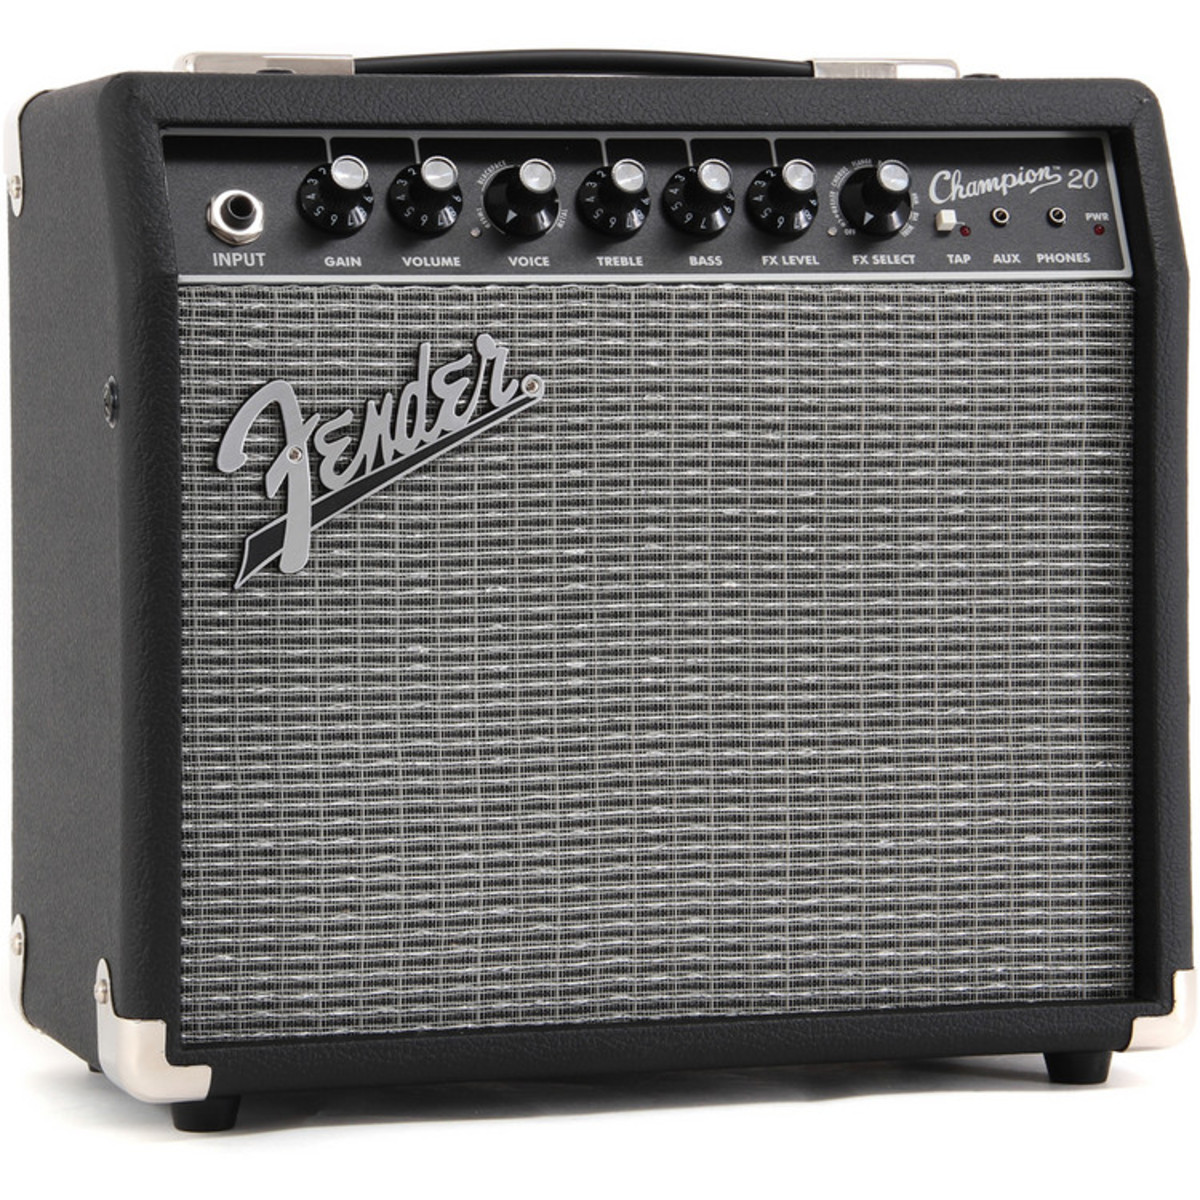 fender champion 20 guitar combo amp with effects nearly new at. Black Bedroom Furniture Sets. Home Design Ideas